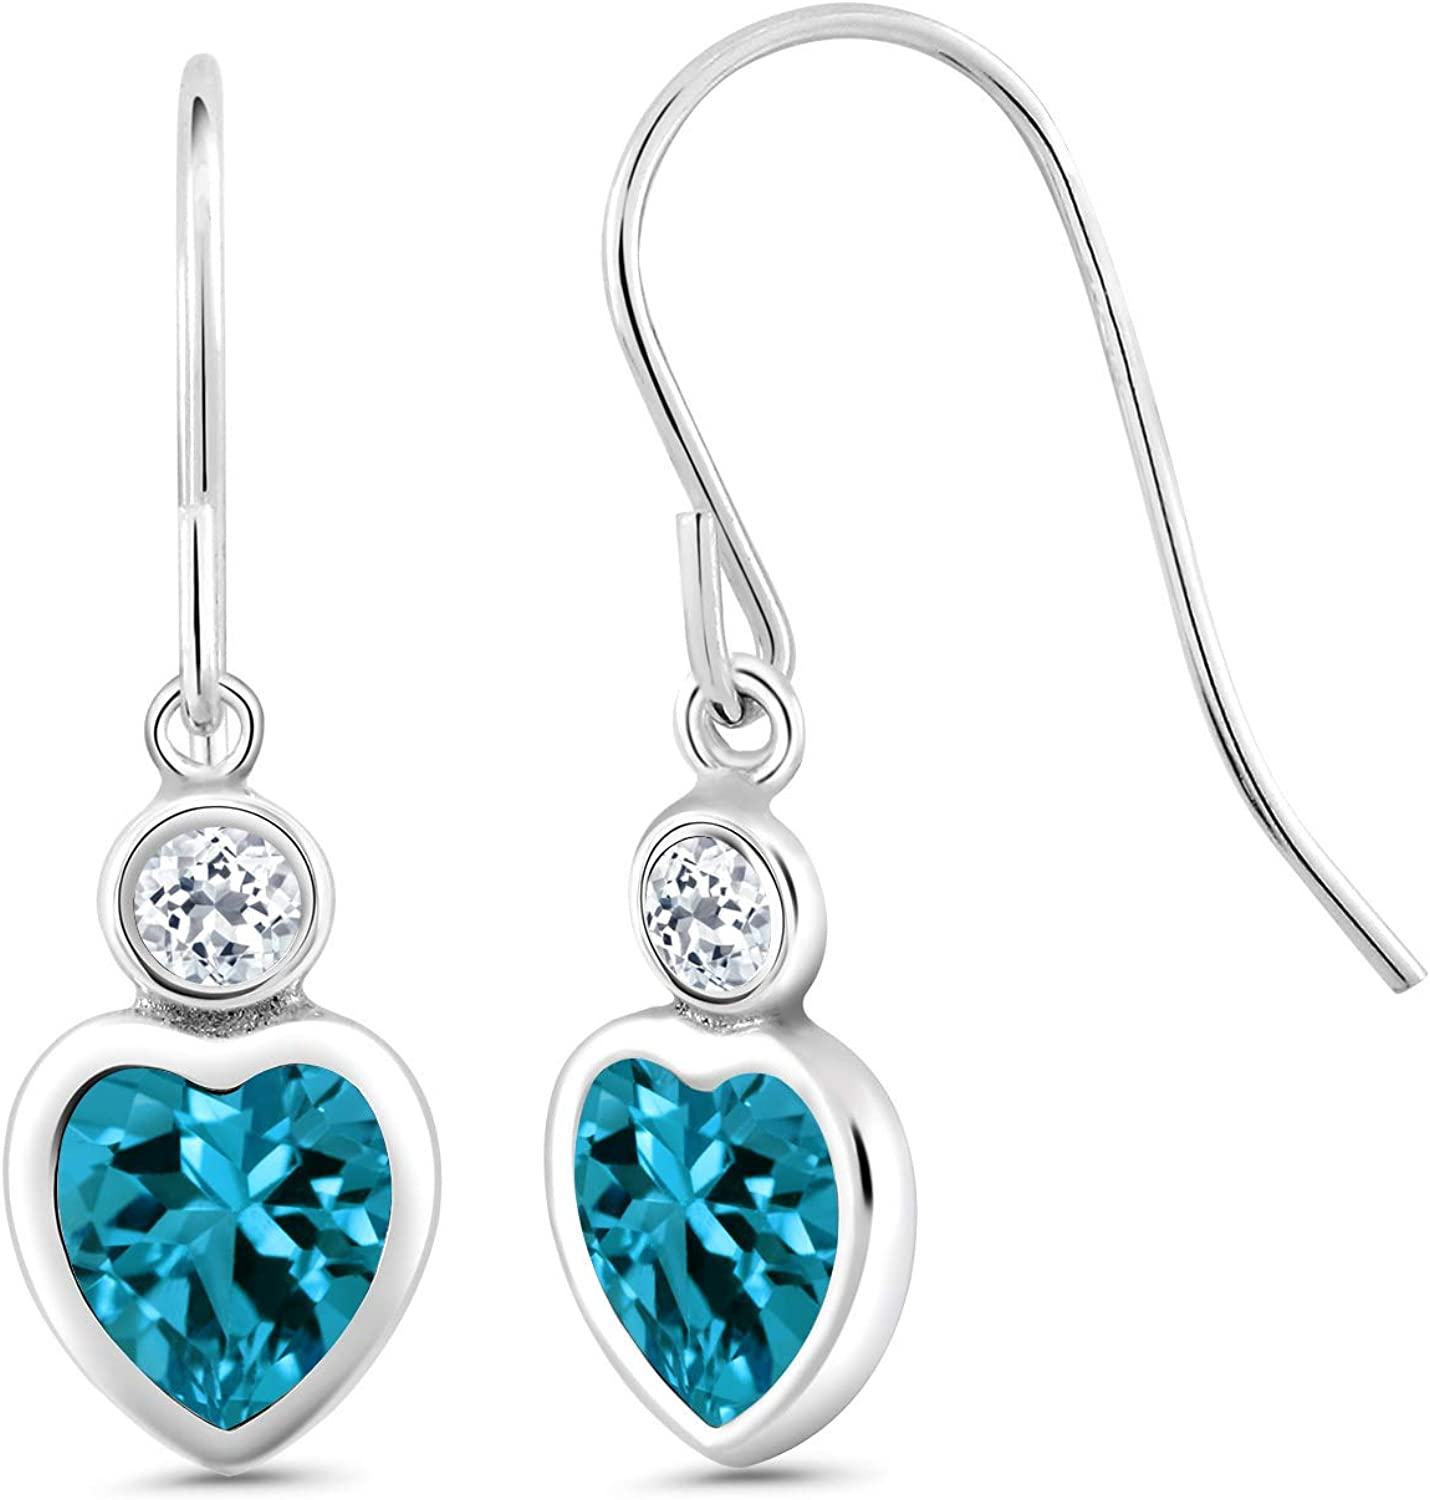 Beauty products Gem Stone King 2.18 Ct Heart London White Topaz Blue Shape Max 87% OFF